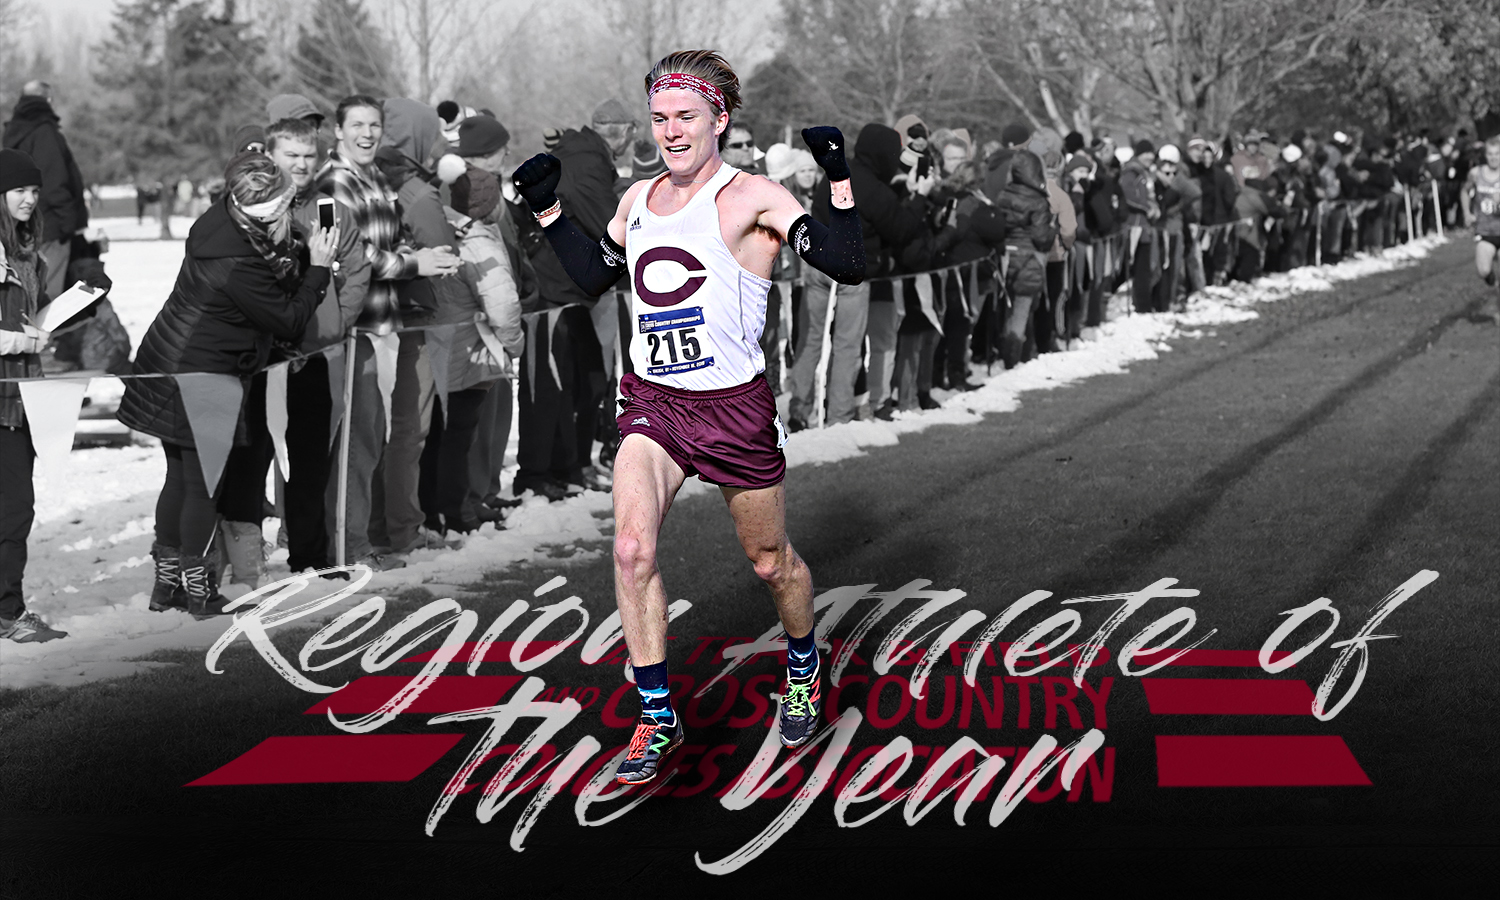 Ryan Cutter Selected as USTFCCCA Regional Athlete of the Year